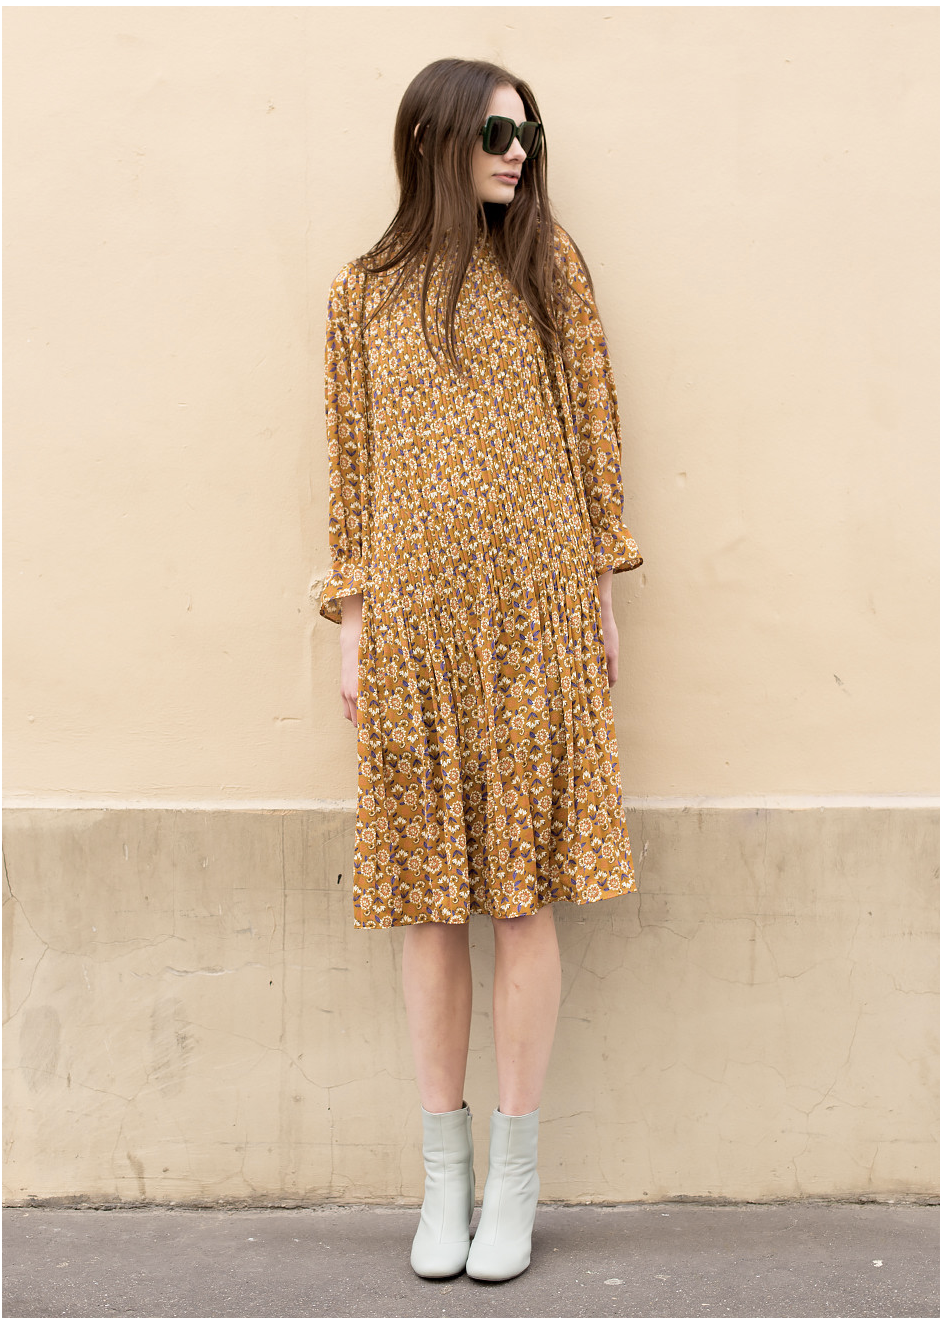 The fall transition dress